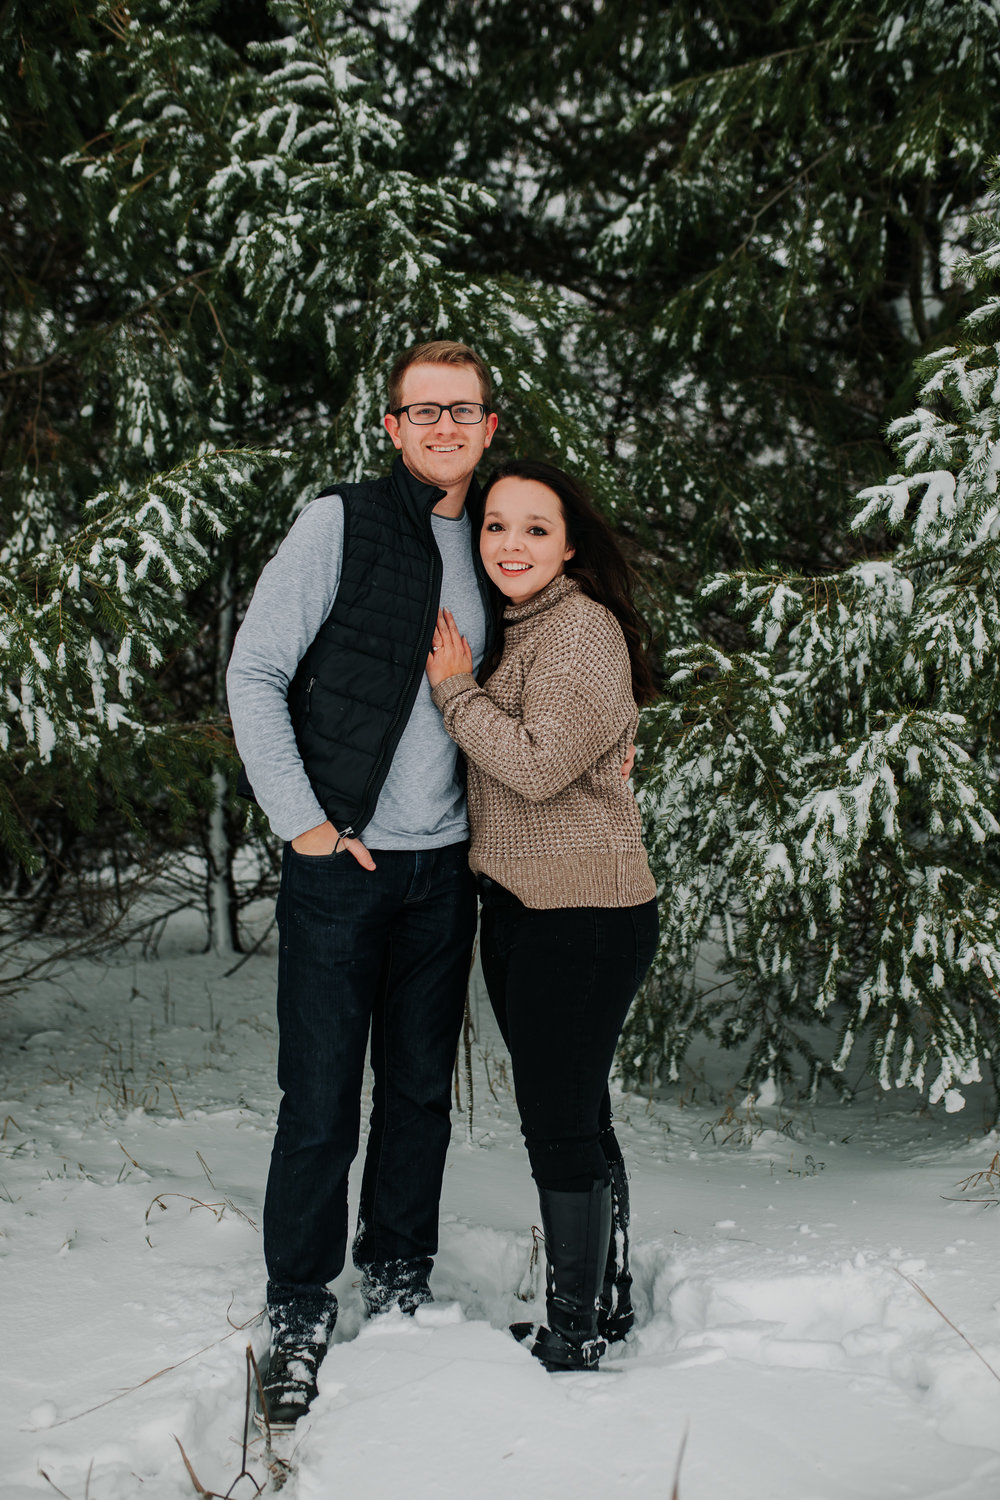 Vanessa & Dan - Engaged - Nathaniel Jensen Photography - Omaha Nebraska Wedding Photographer - Standing Bear Lake - Snowy Engagement Session-37.jpg